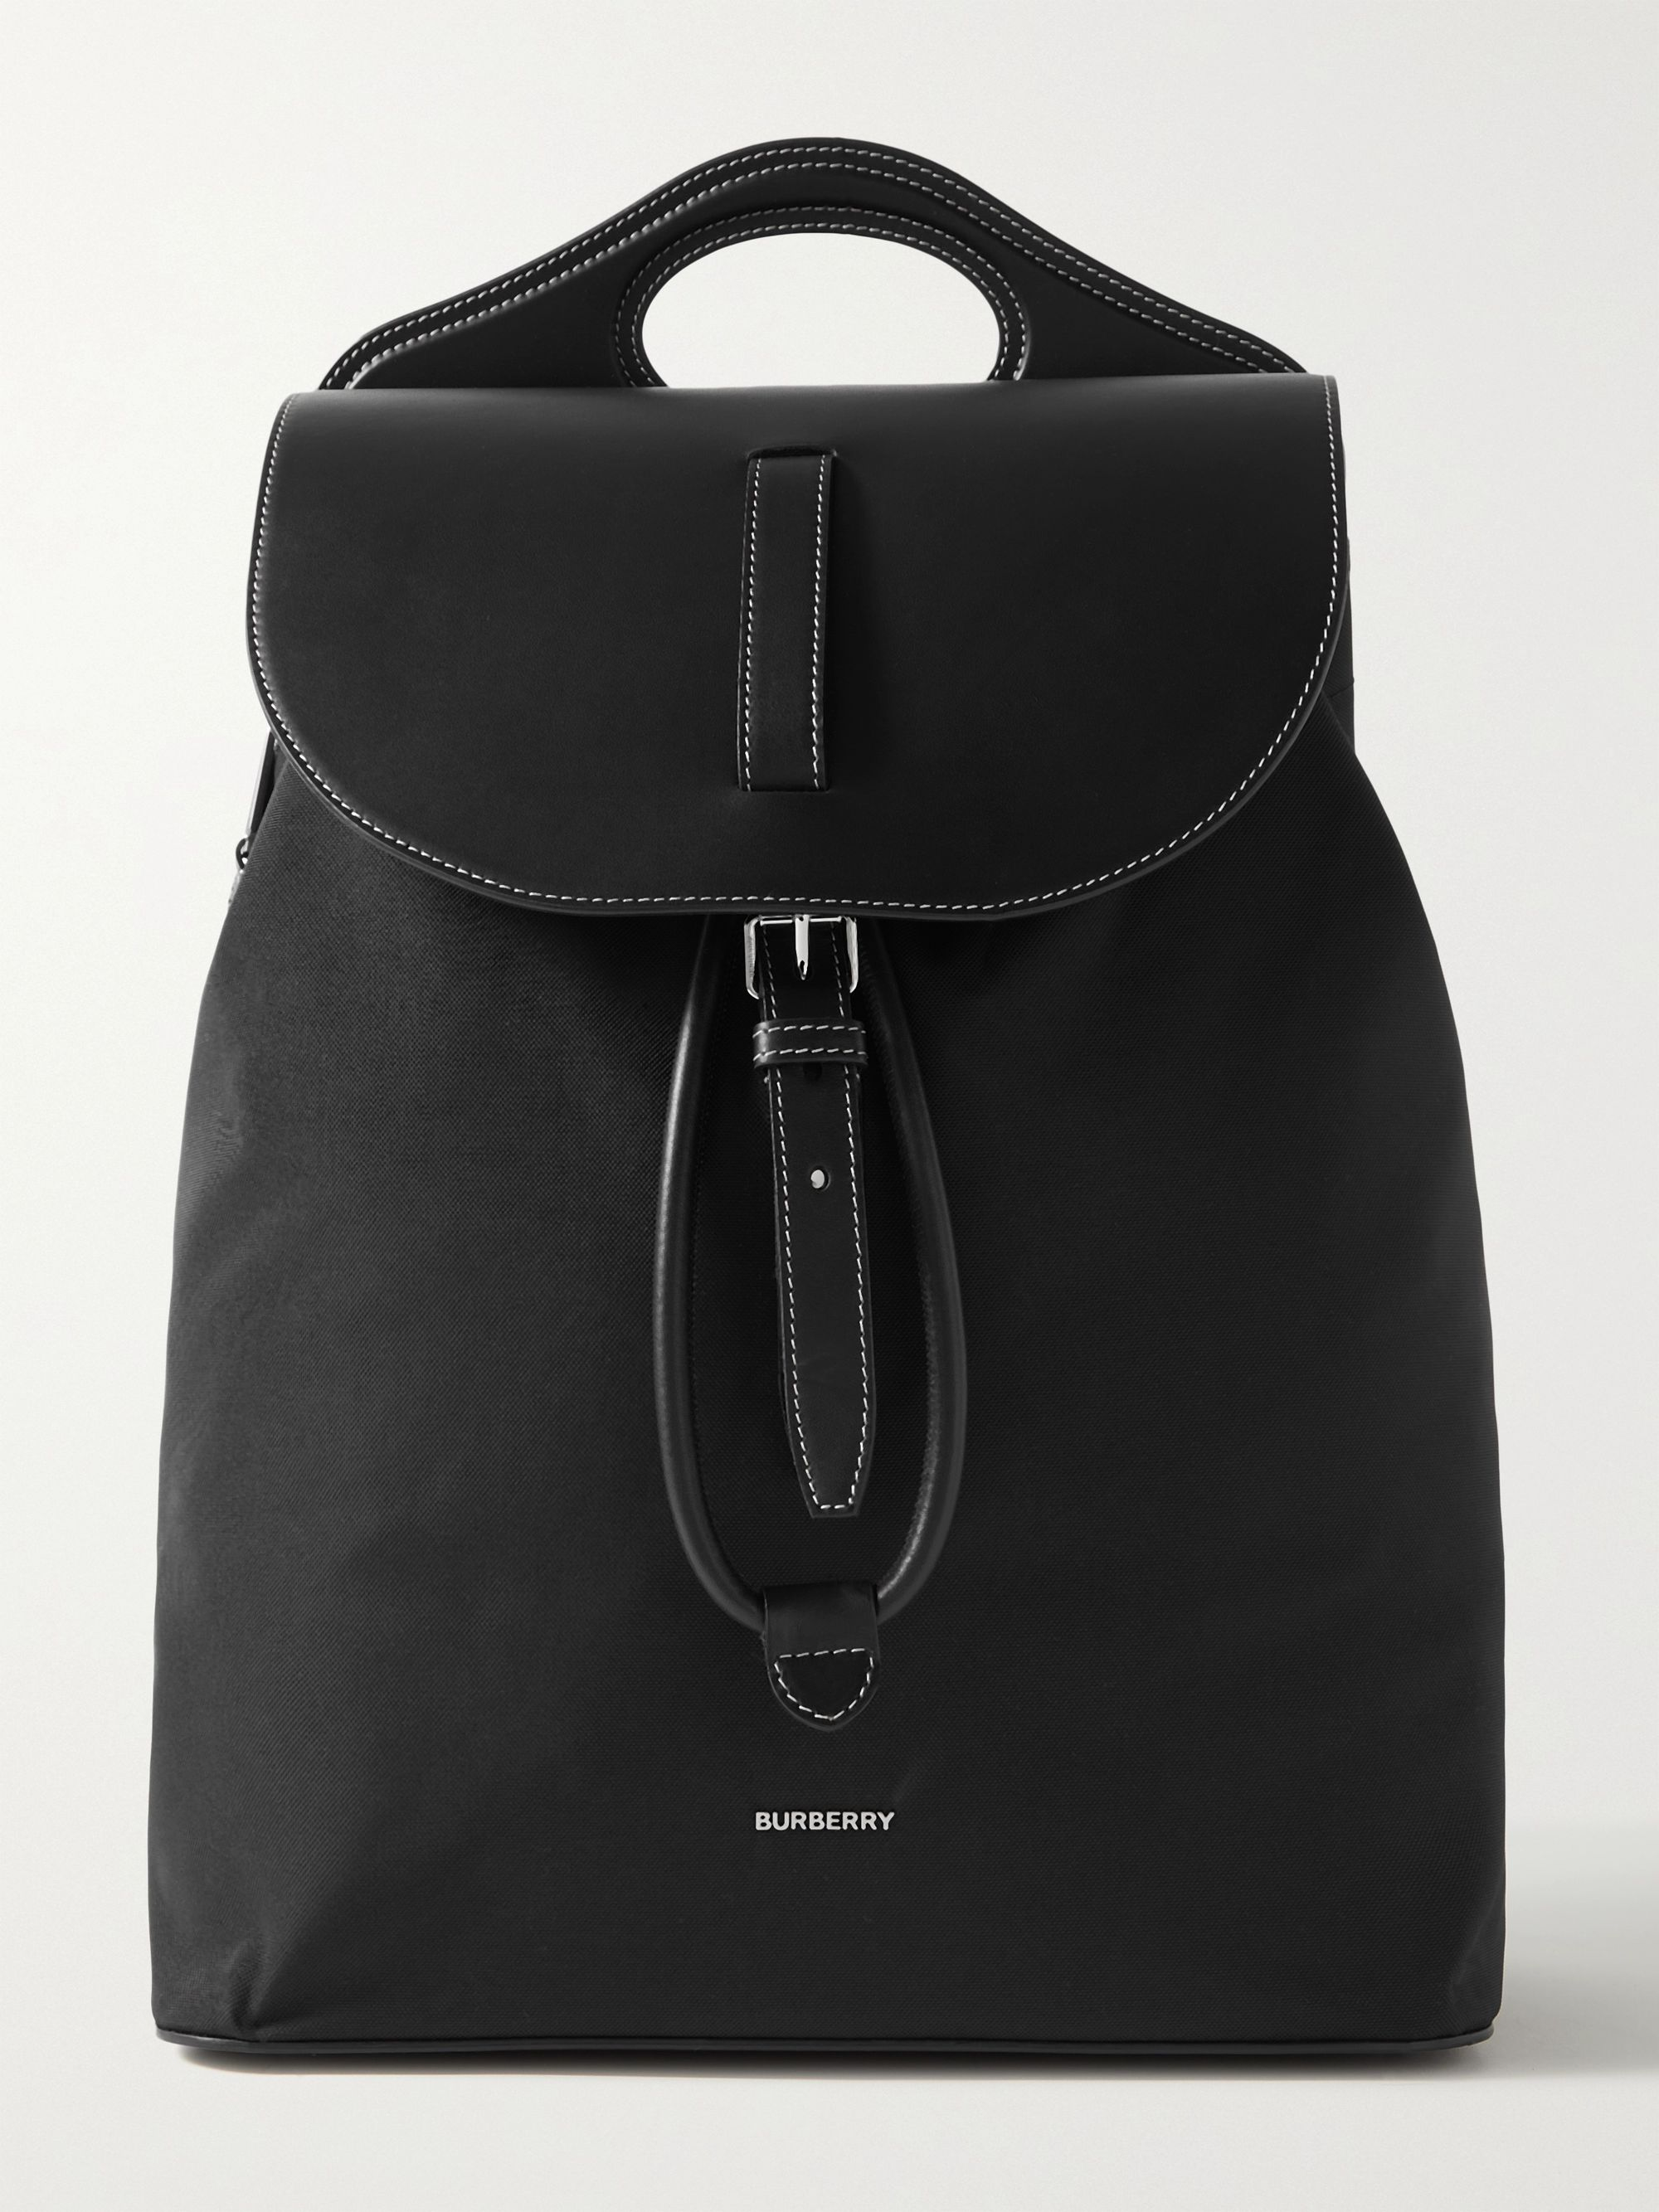 BURBERRY Leather and Nylon Backpack